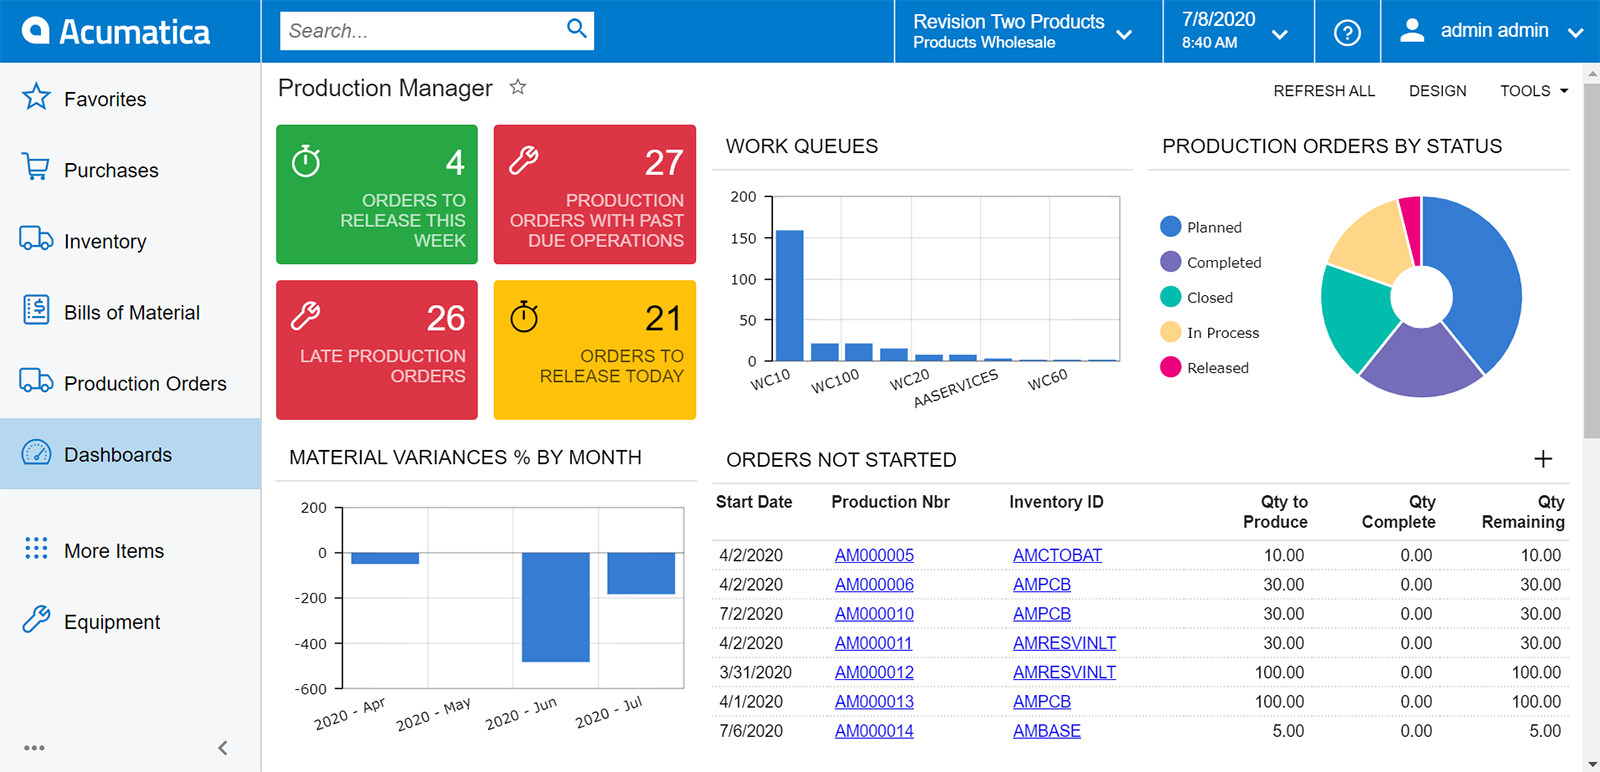 Acumatica Cloud ERP Software - Production Manager Dashboard